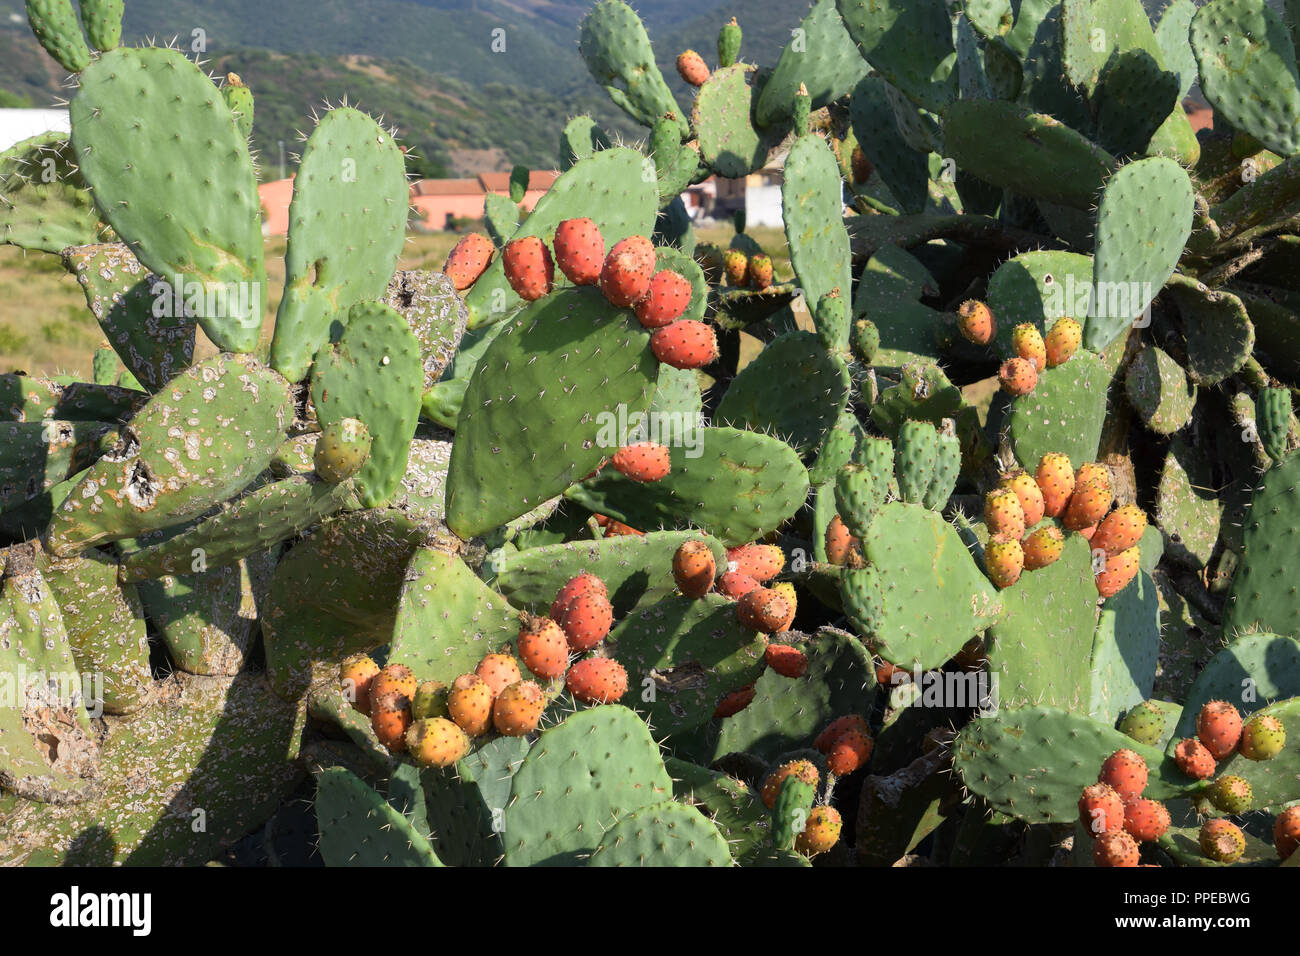 Pflanze Mit A Wild Prickly Pear Cactus Stockfotos And Wild Prickly Pear